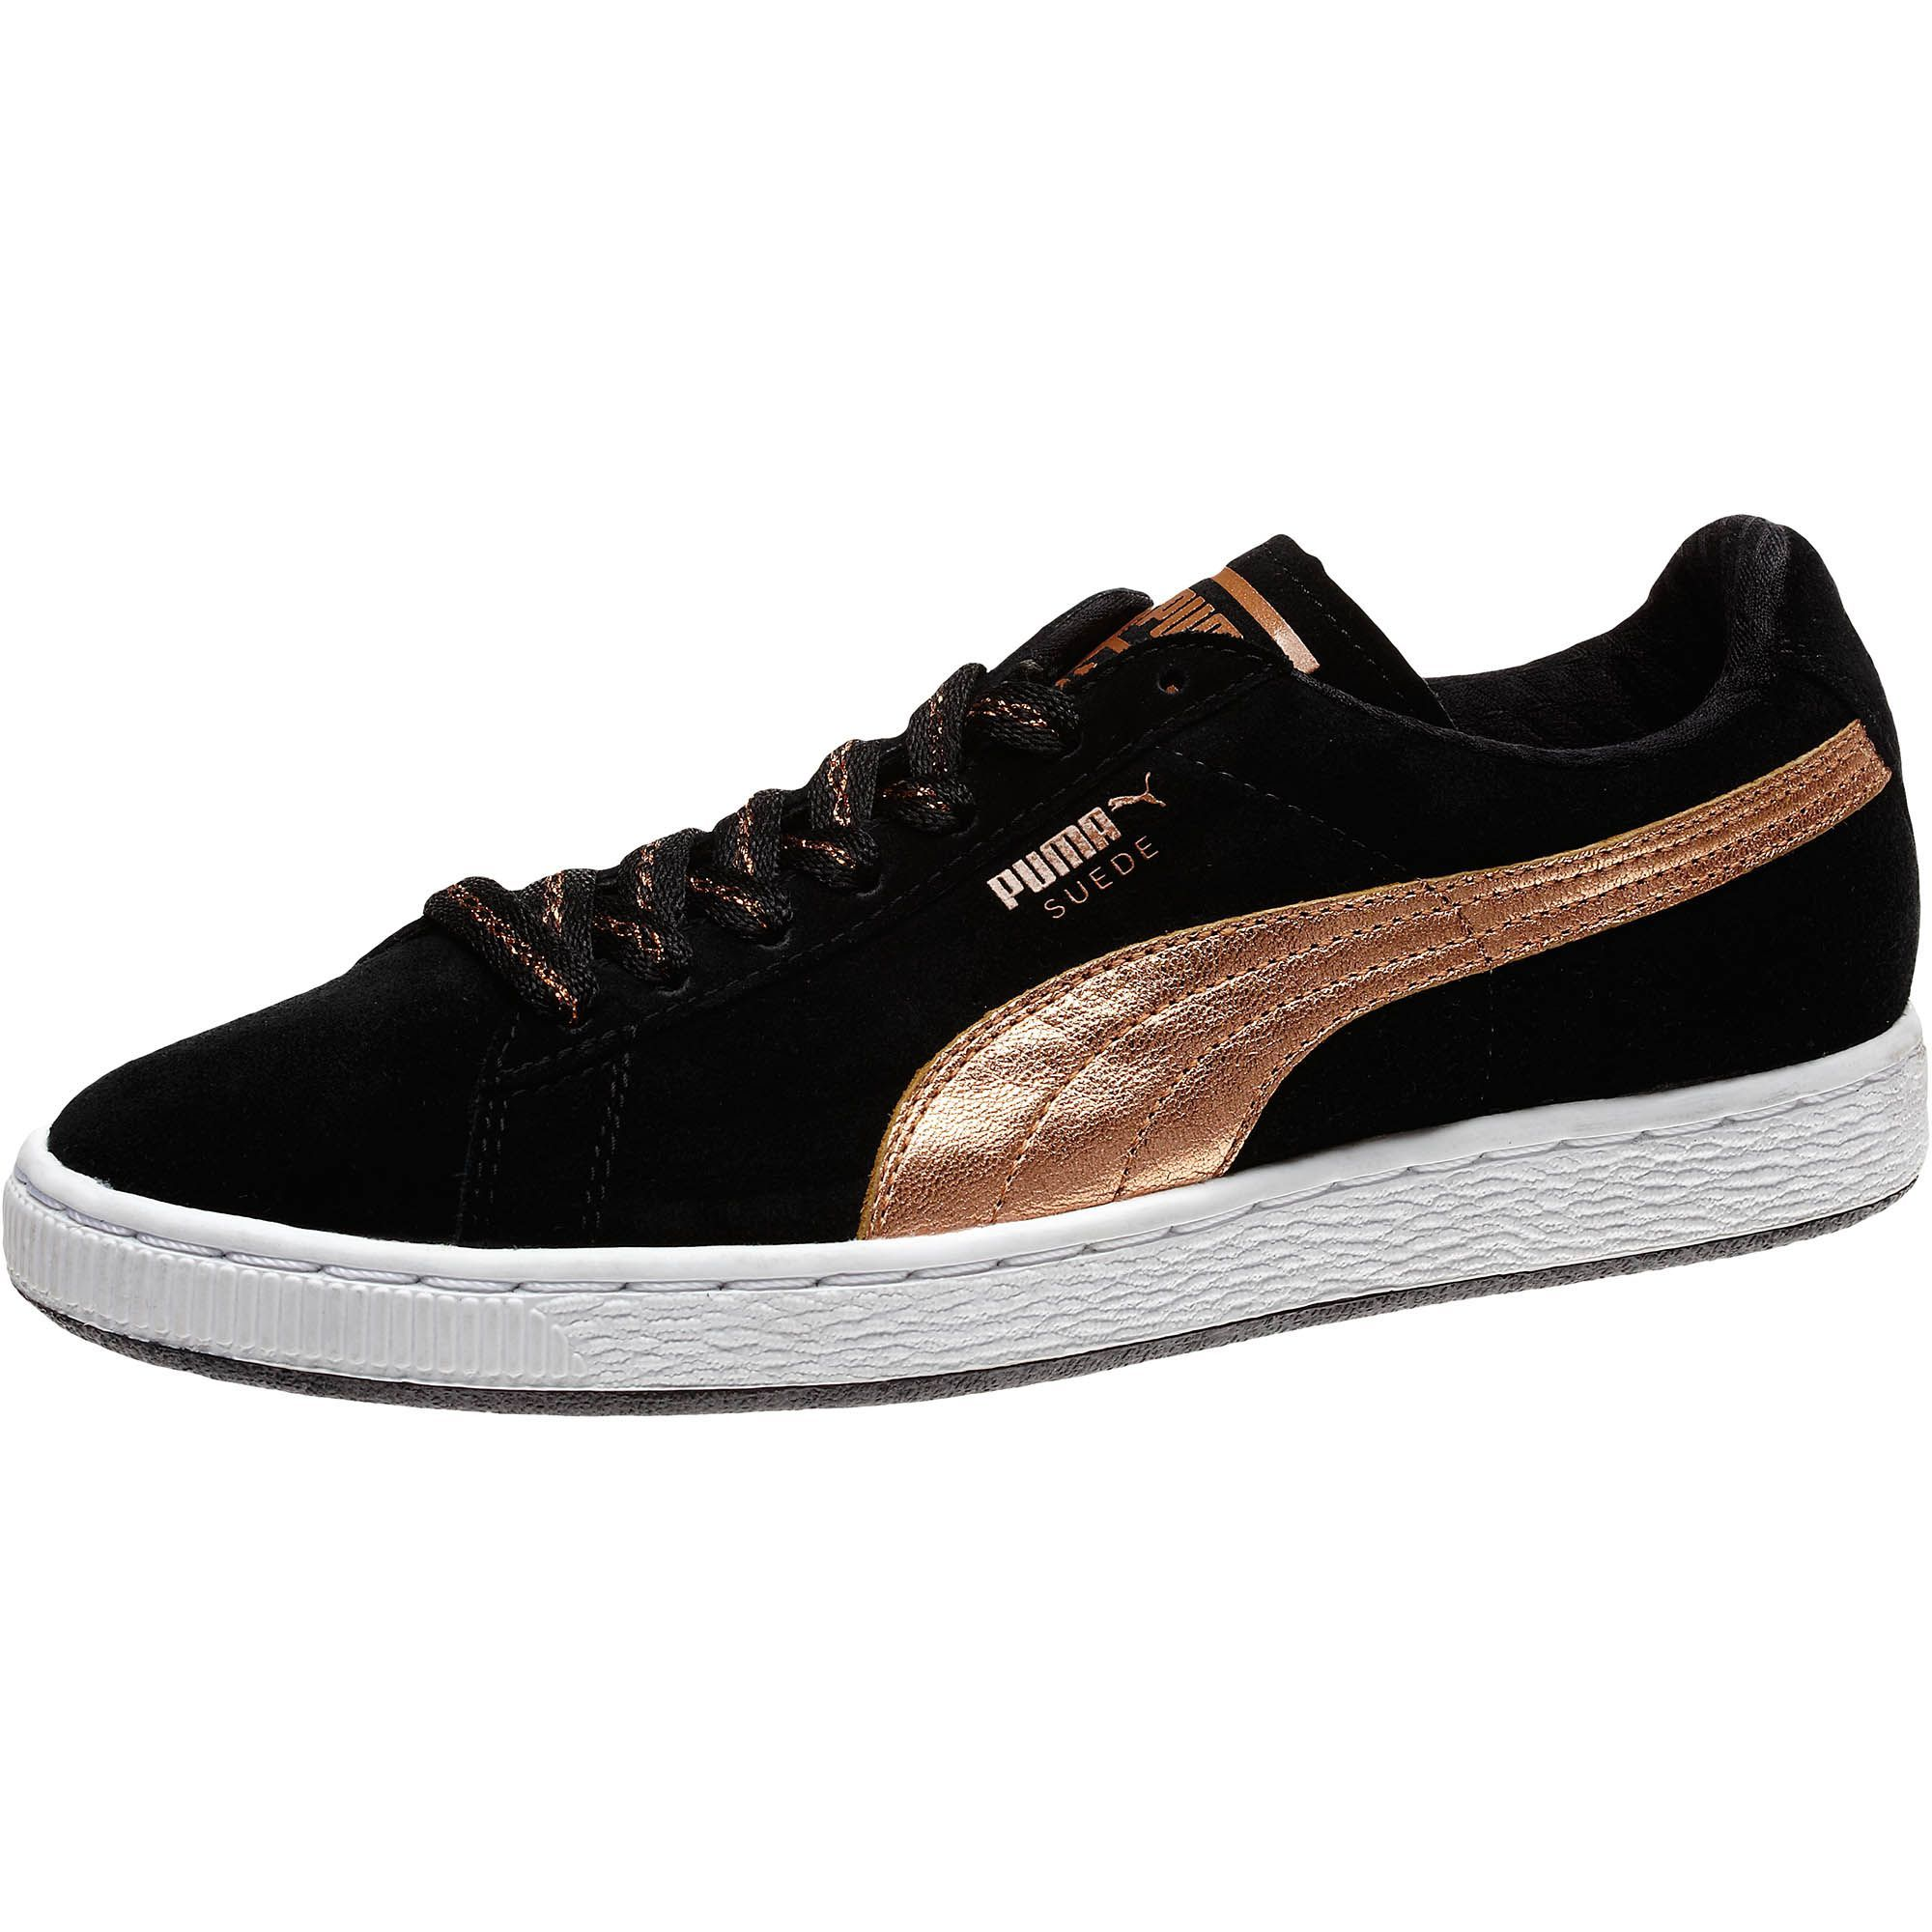 PUMA Suede Classic Rose Gold Womens Sneakers from the official Puma Online Store